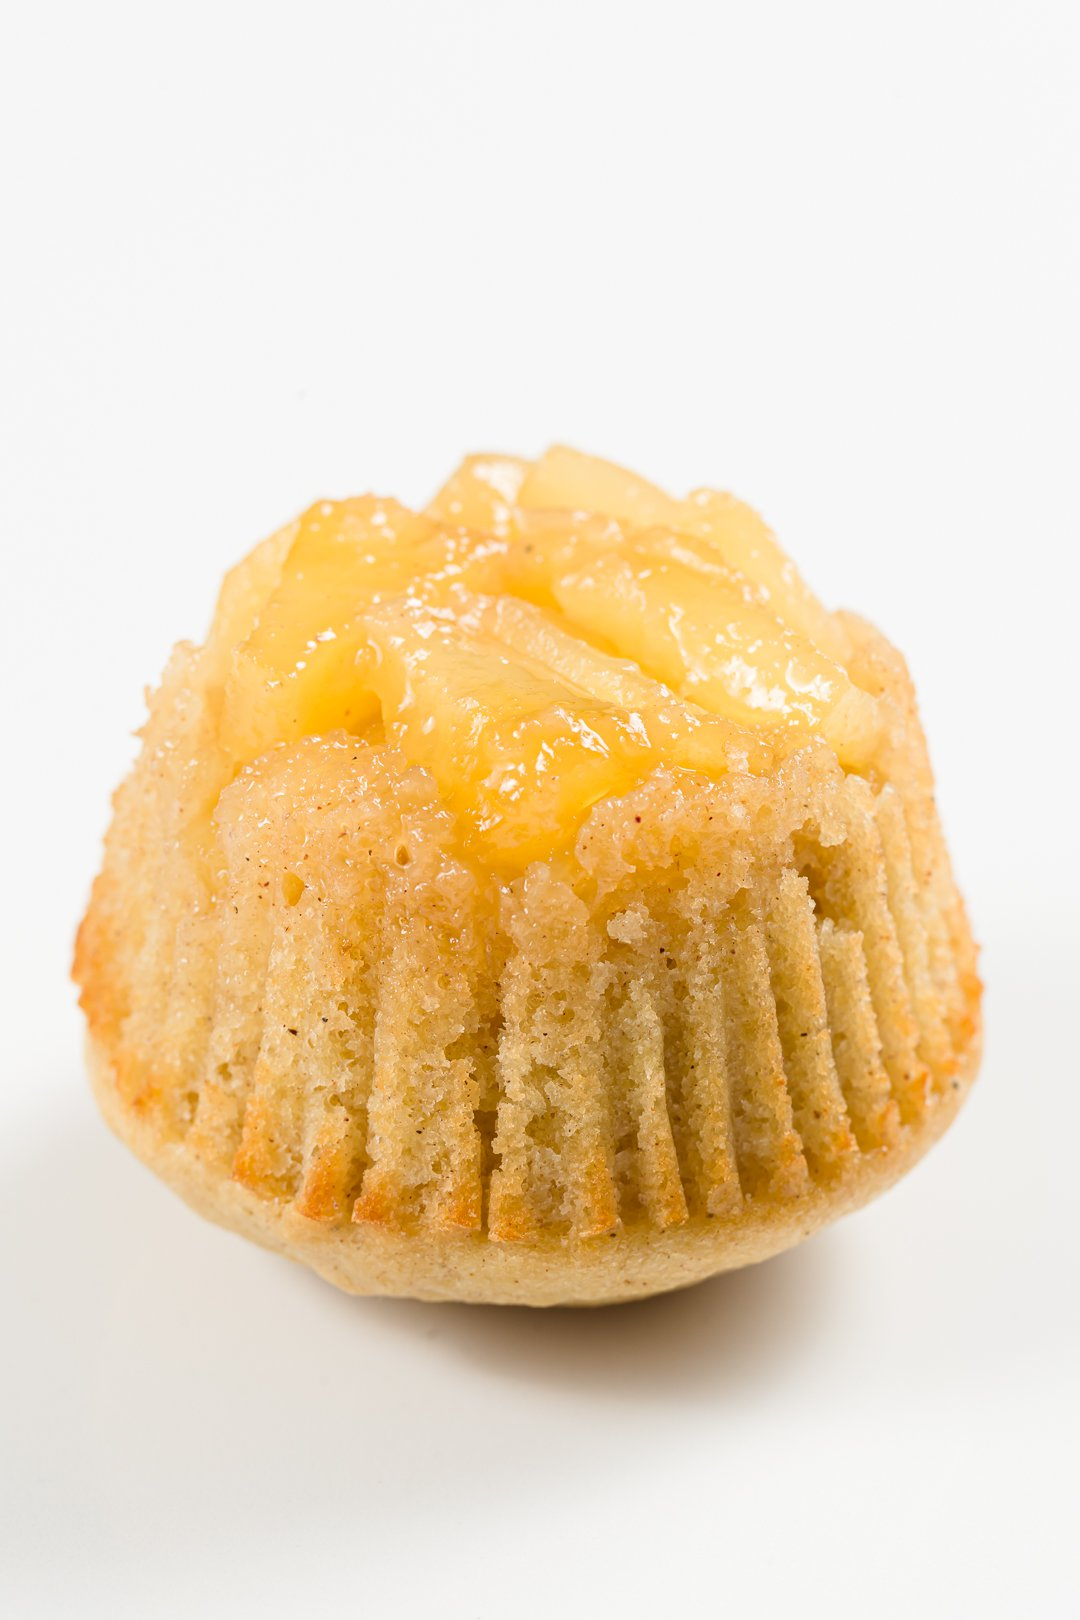 pineapple upside-down cupcake without whipped cream